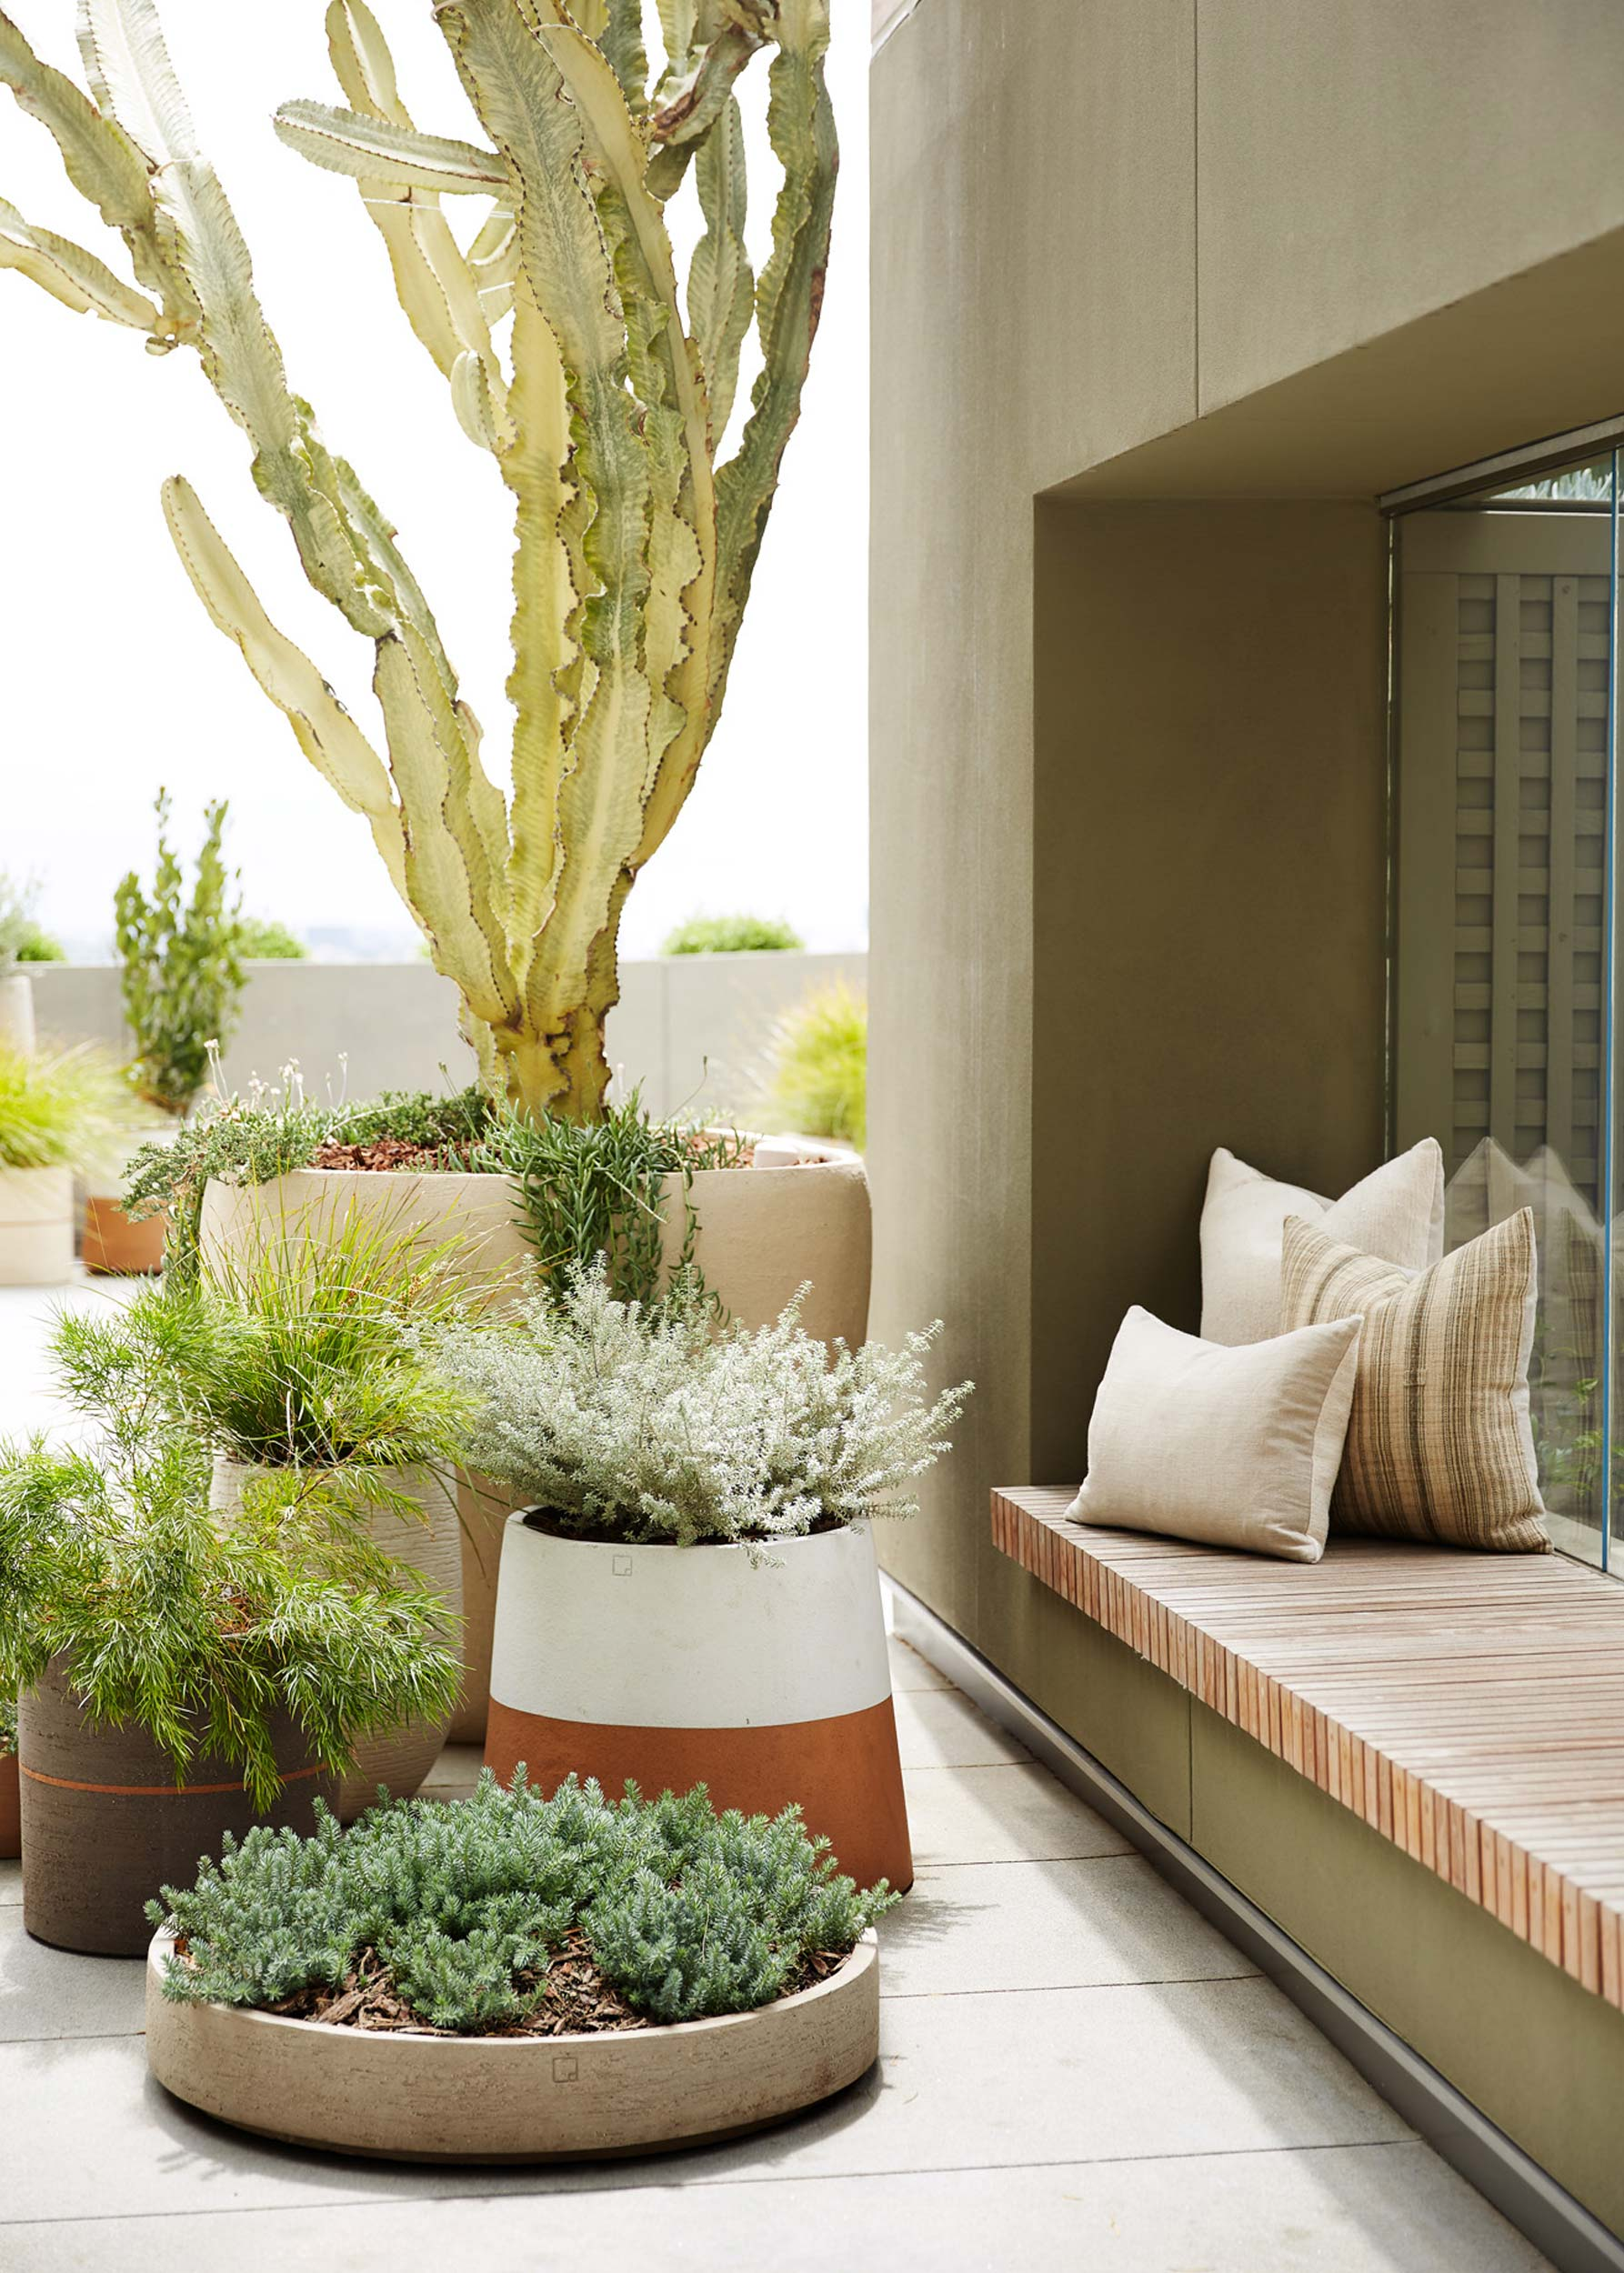 cactus in beige cermaic planters by wooden bench